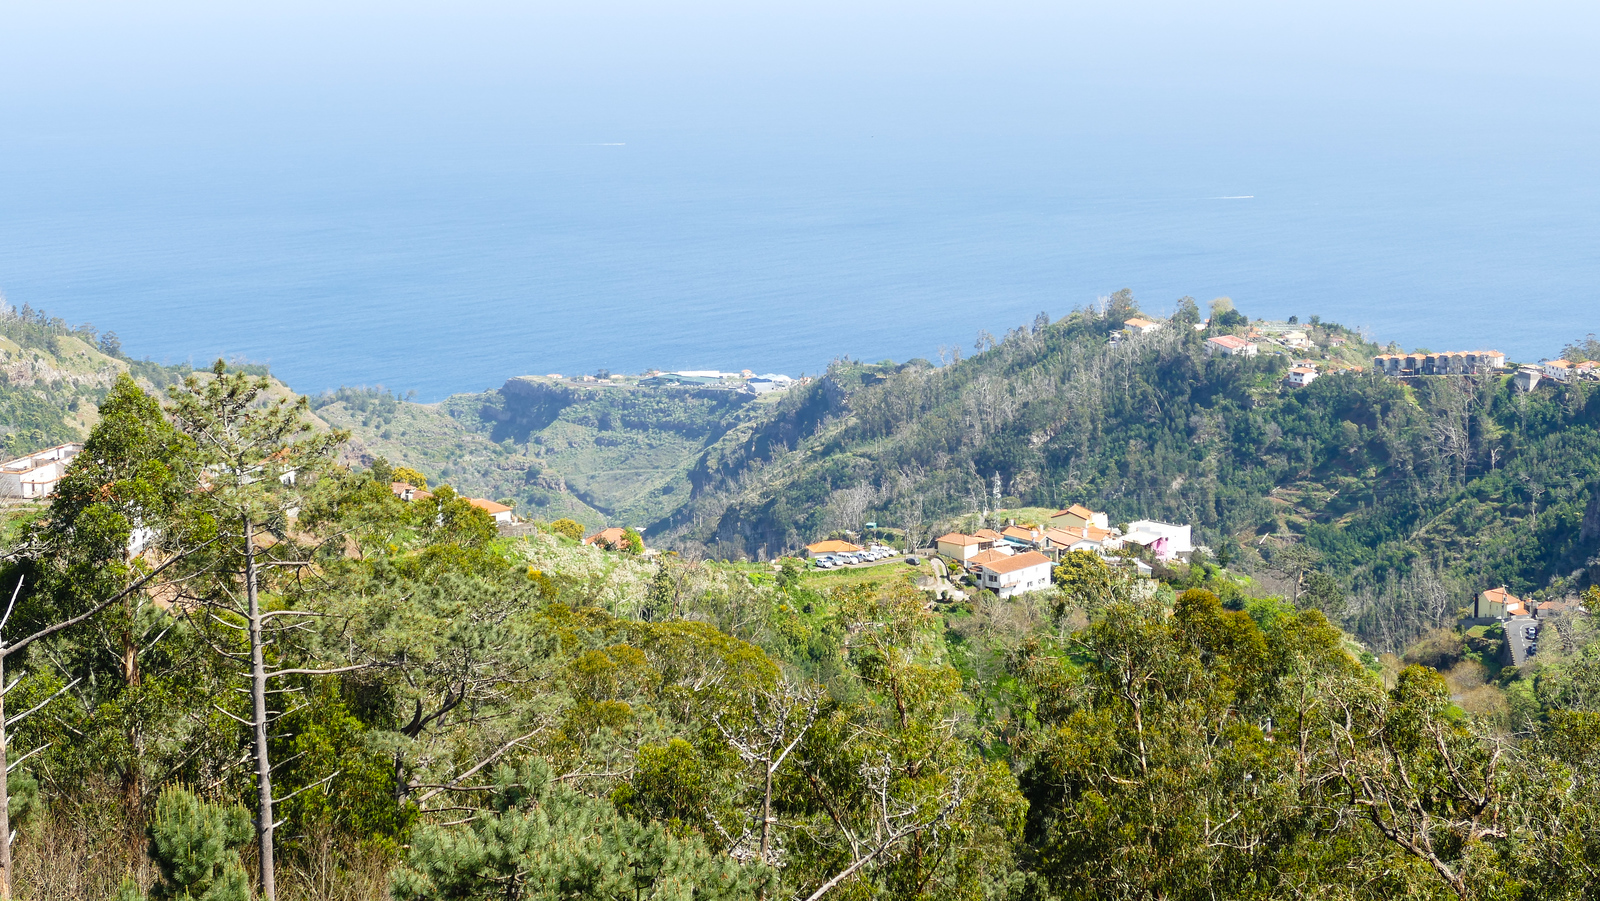 Hillside overlooking a village with the Atlantic Ocean in the background